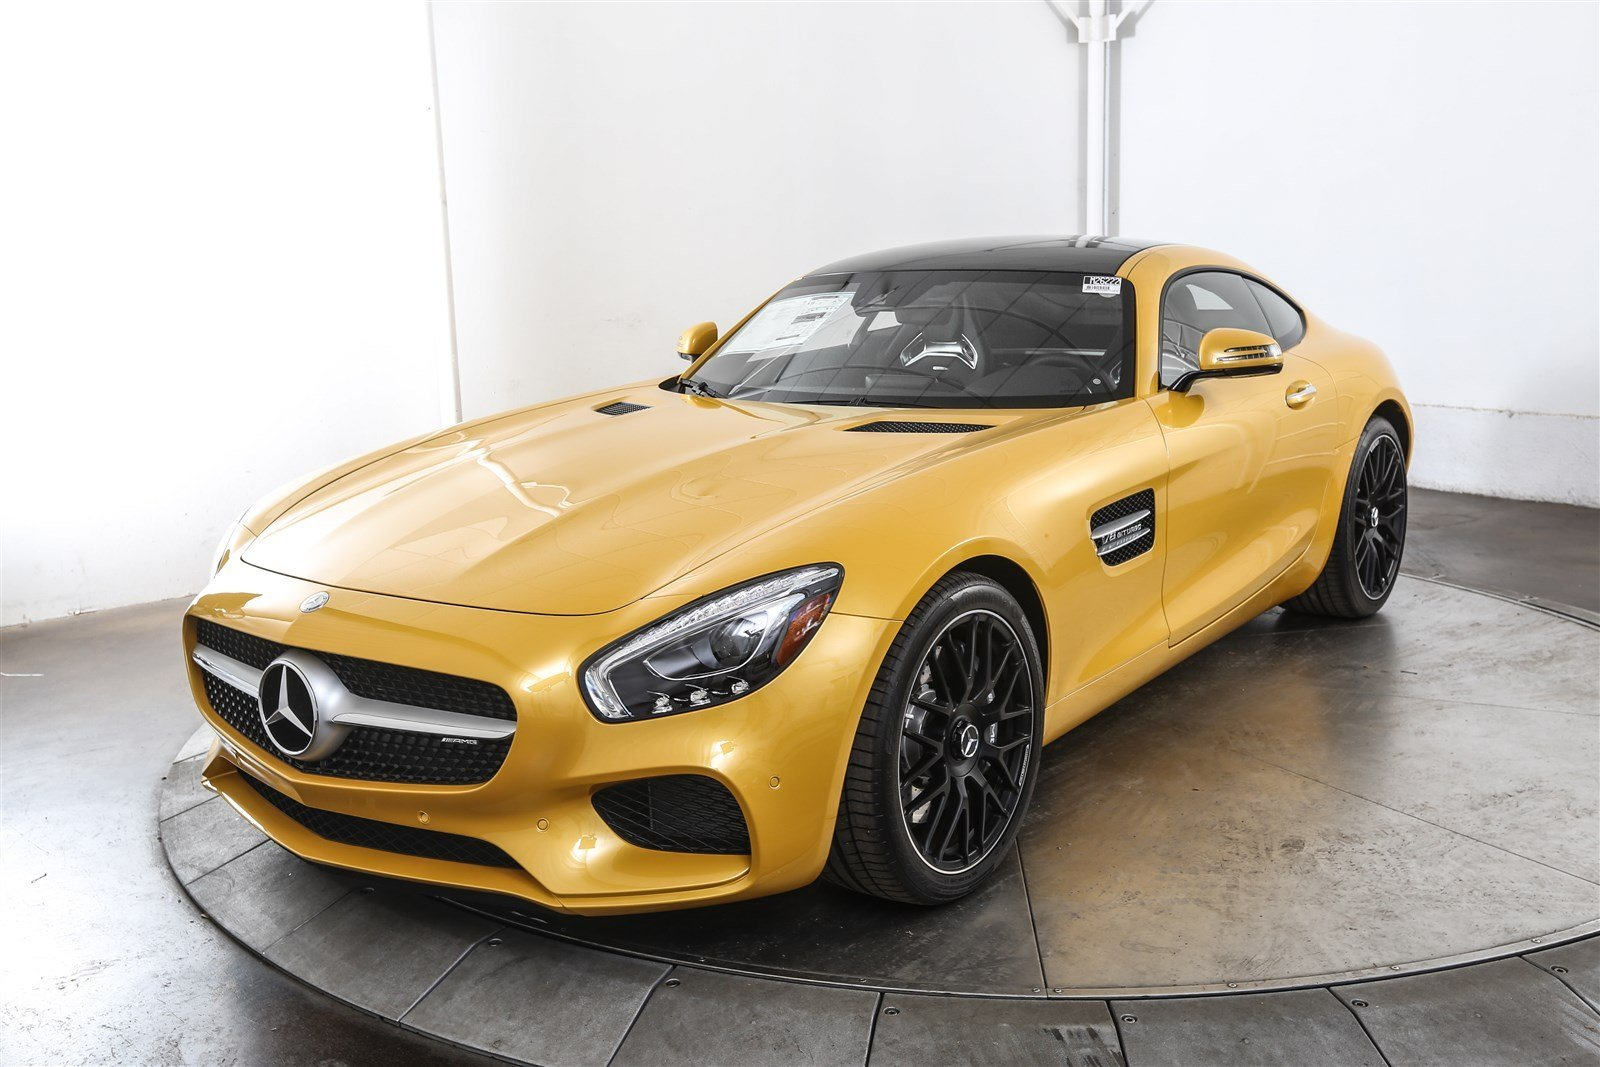 New 2017 mercedes benz amg gt coupe in austin m26222 for 2017 mercedes benz gts amg price